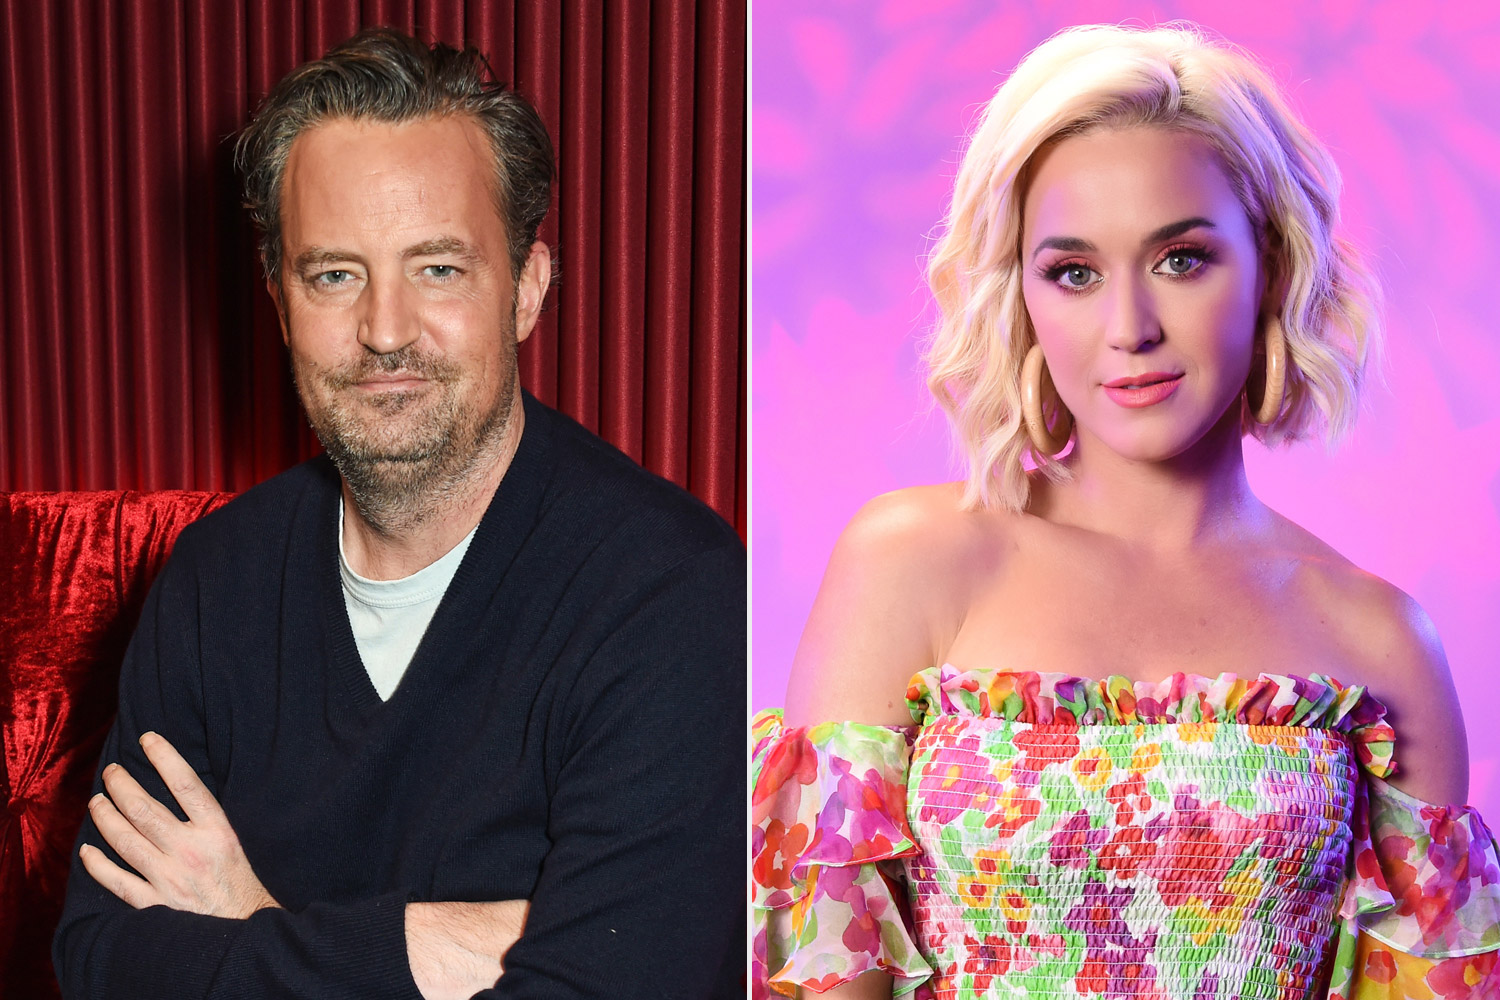 Matthew Perry and Katy Perry